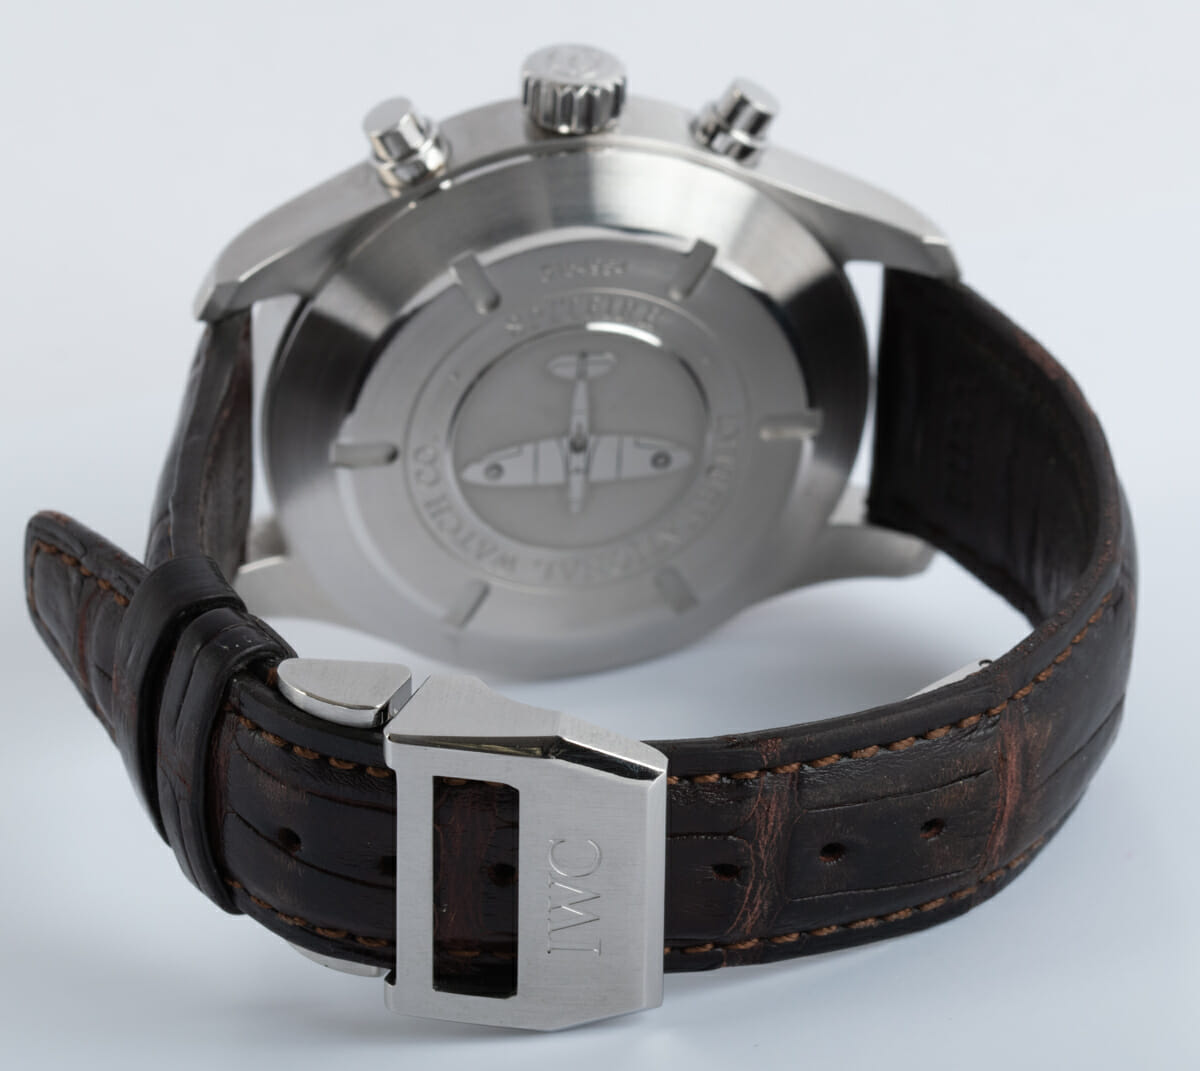 Rear / Band View of Spitfire Flyback Chronograph